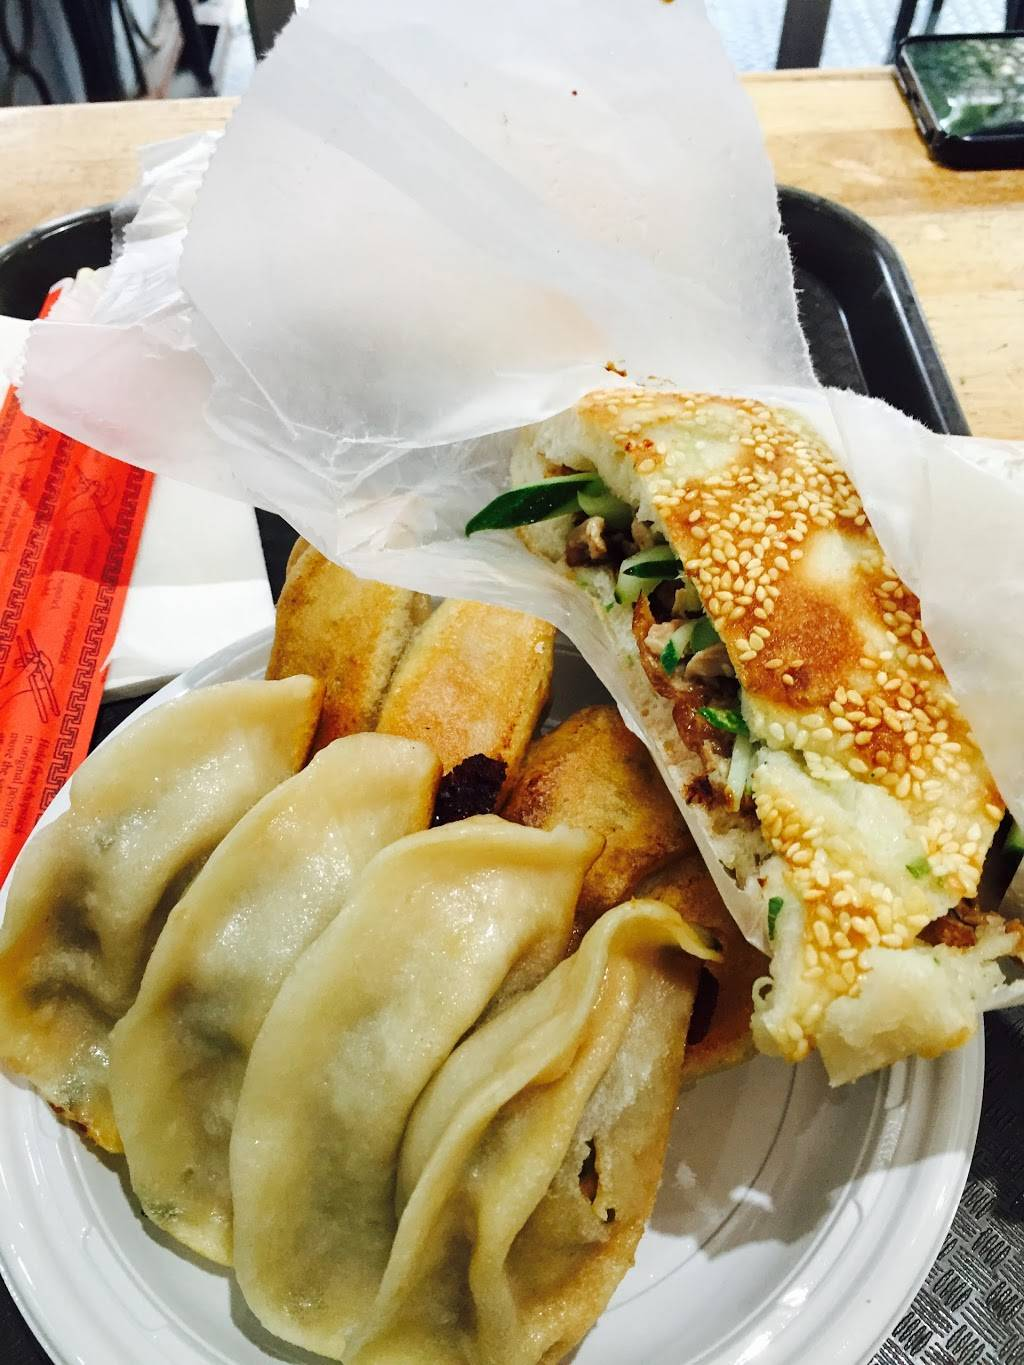 Vanessas Dumpling House | restaurant | 310 Bedford Ave, Brooklyn, NY 11211, USA | 7182188809 OR +1 718-218-8809